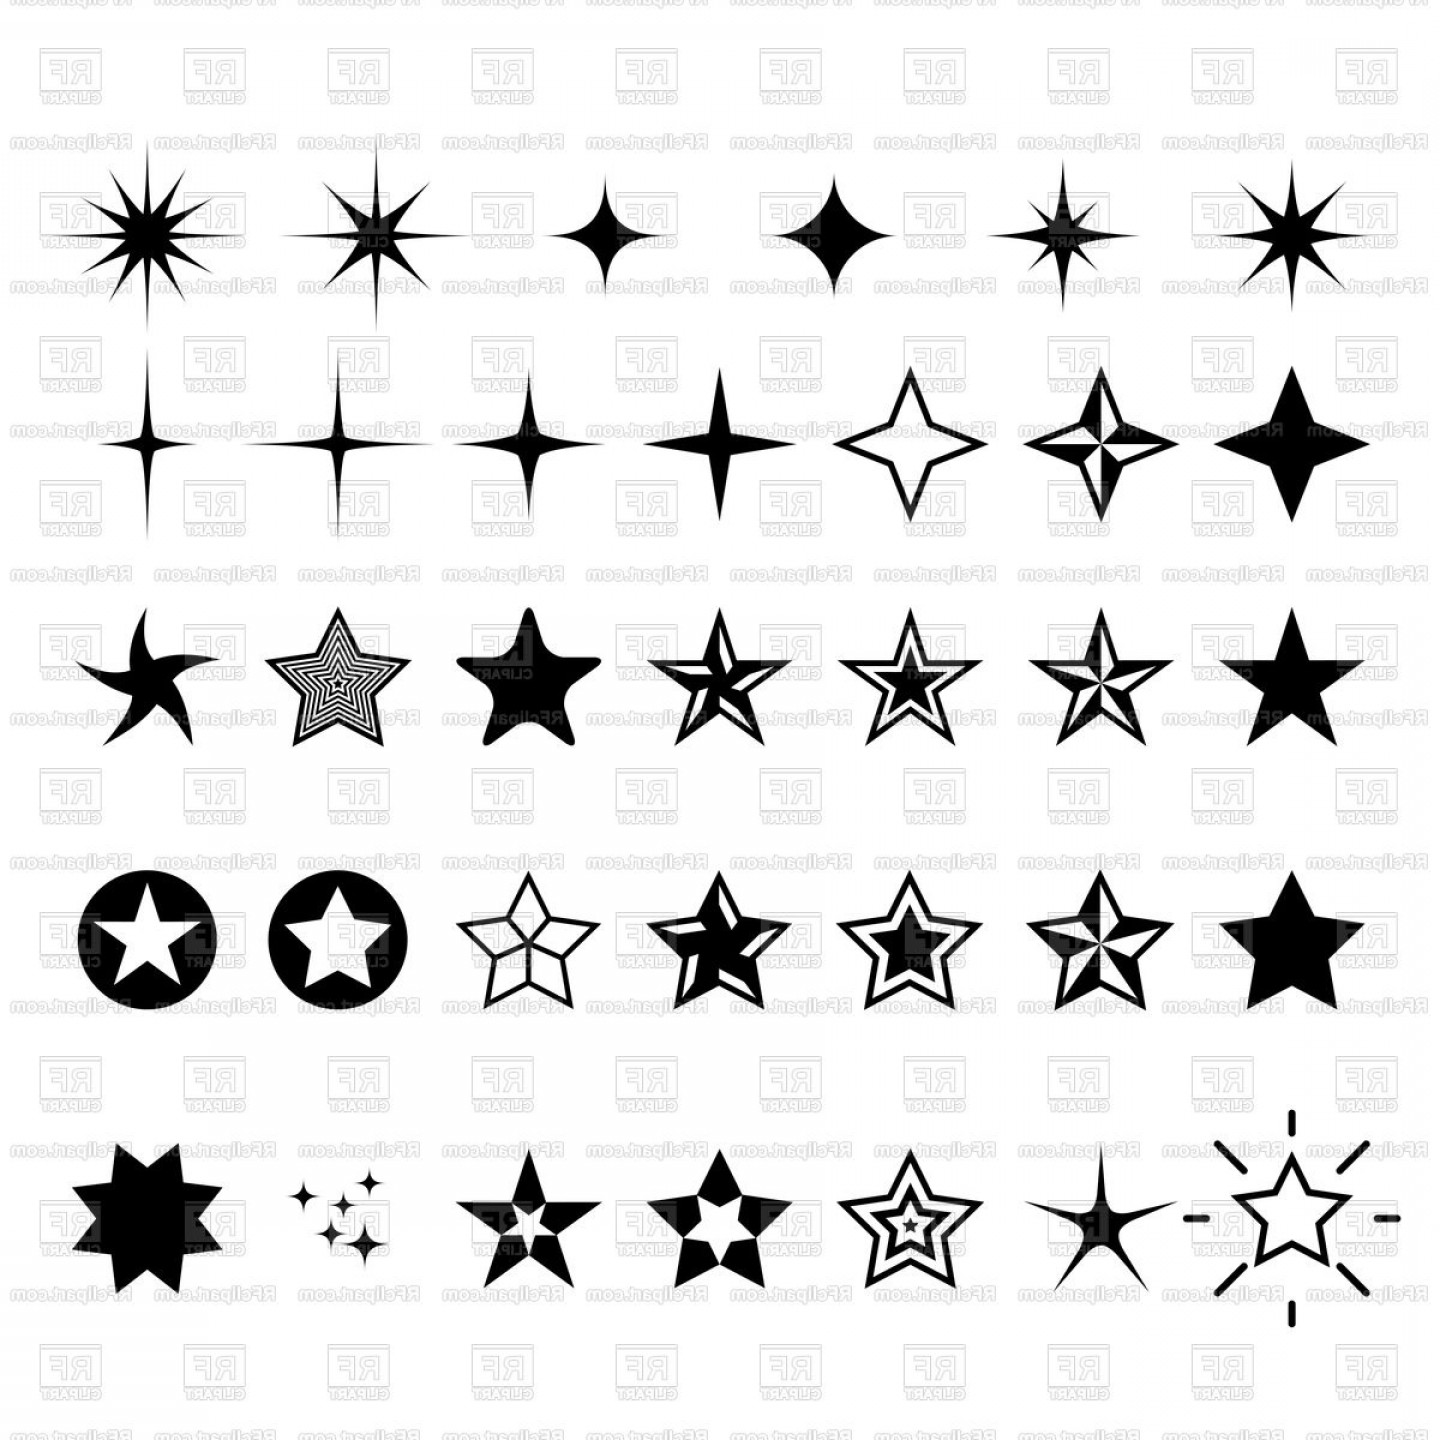 Free Vector Star: Star Icons Rating Rank And Decor Star Symbols Vector Clipart